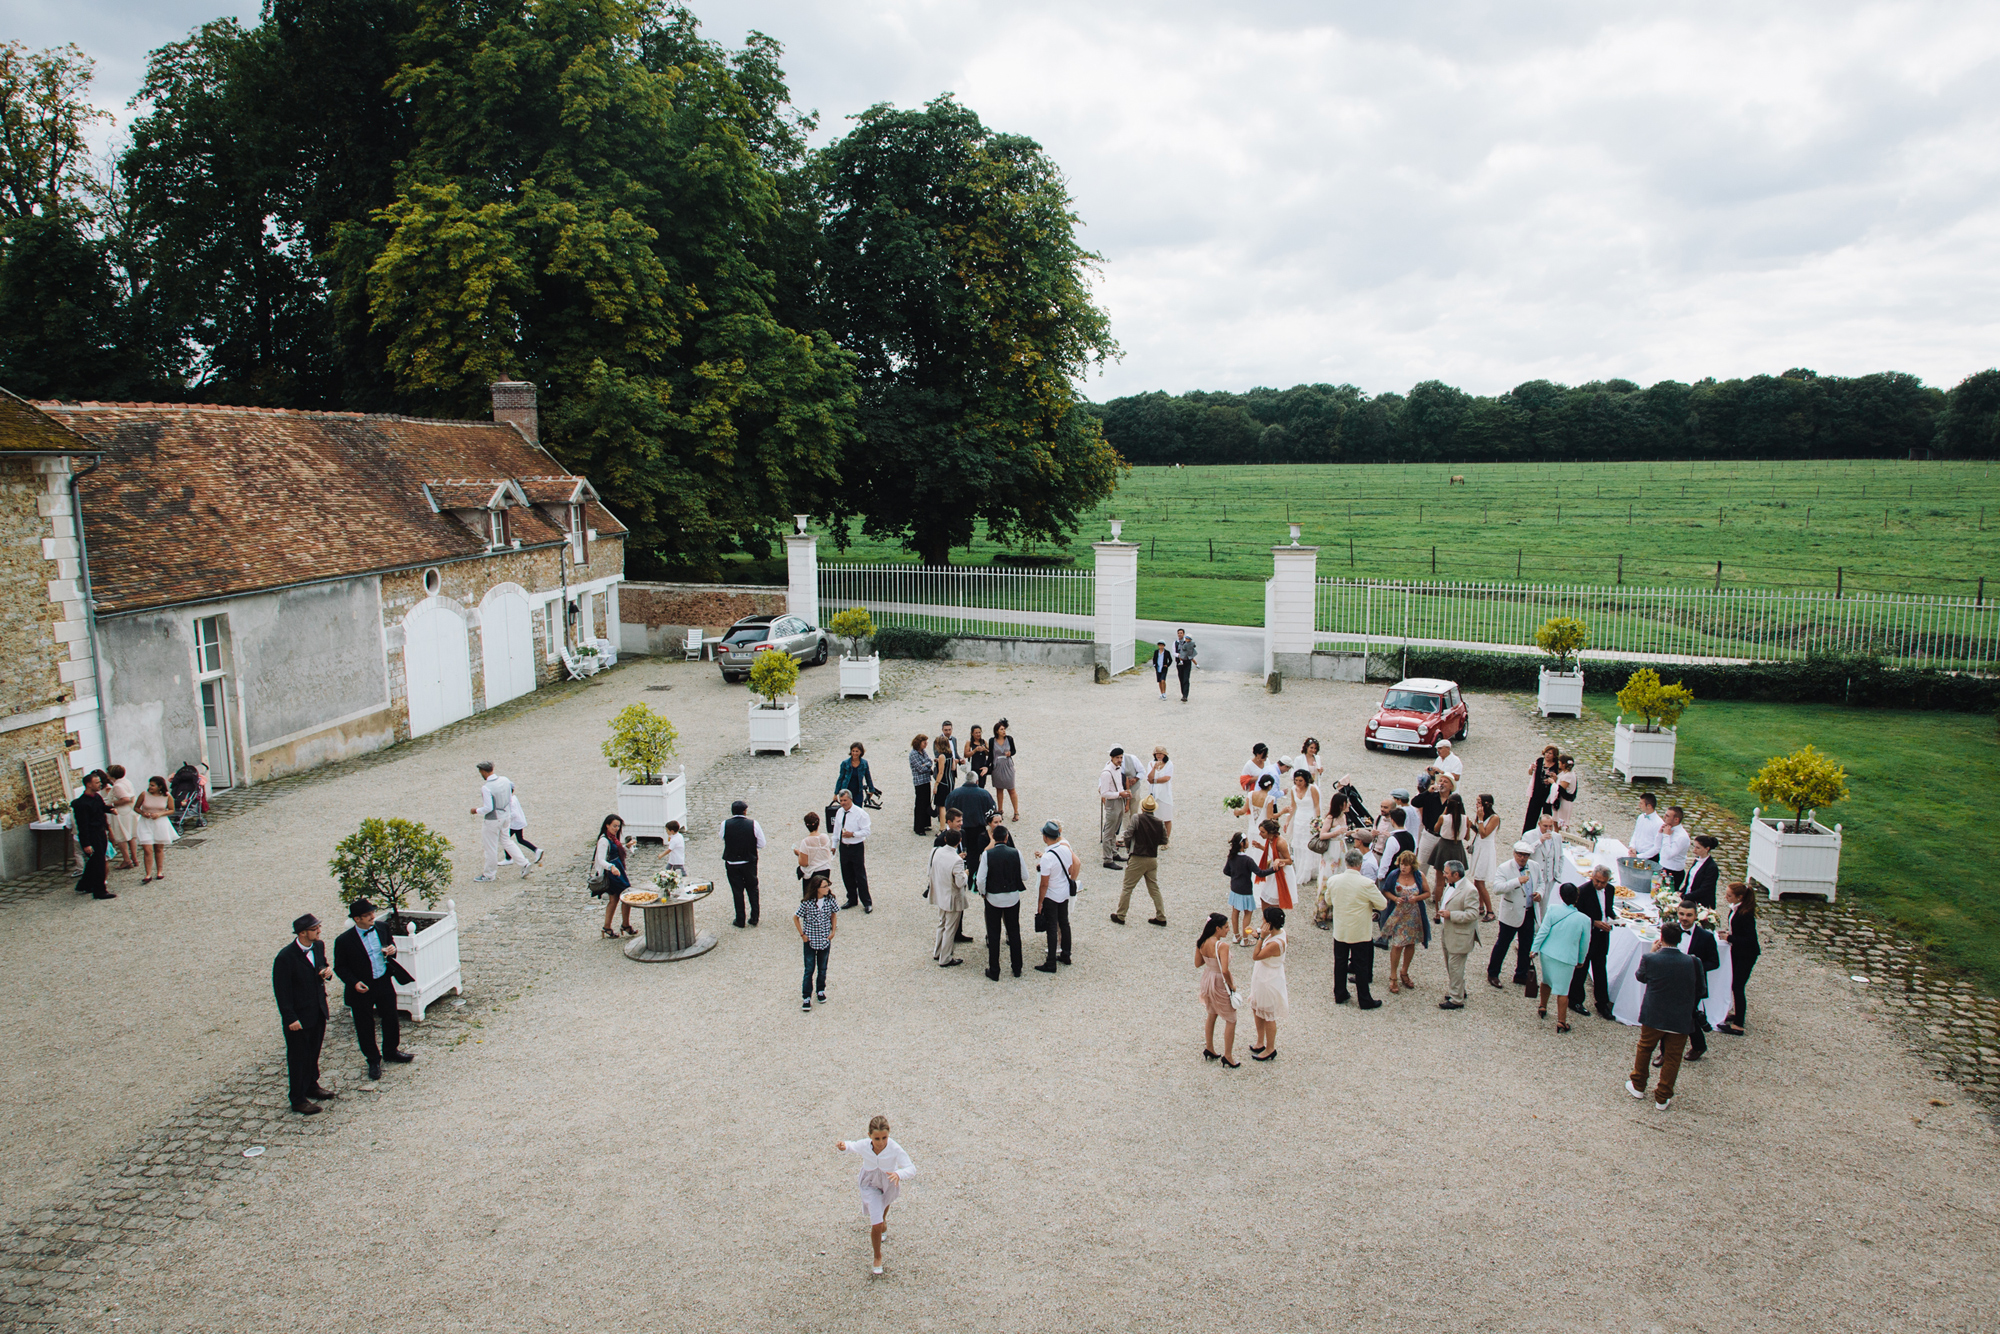 Hermione McCosh Photography mariage au manoir de la Chalotterie, candid natural wedding photography